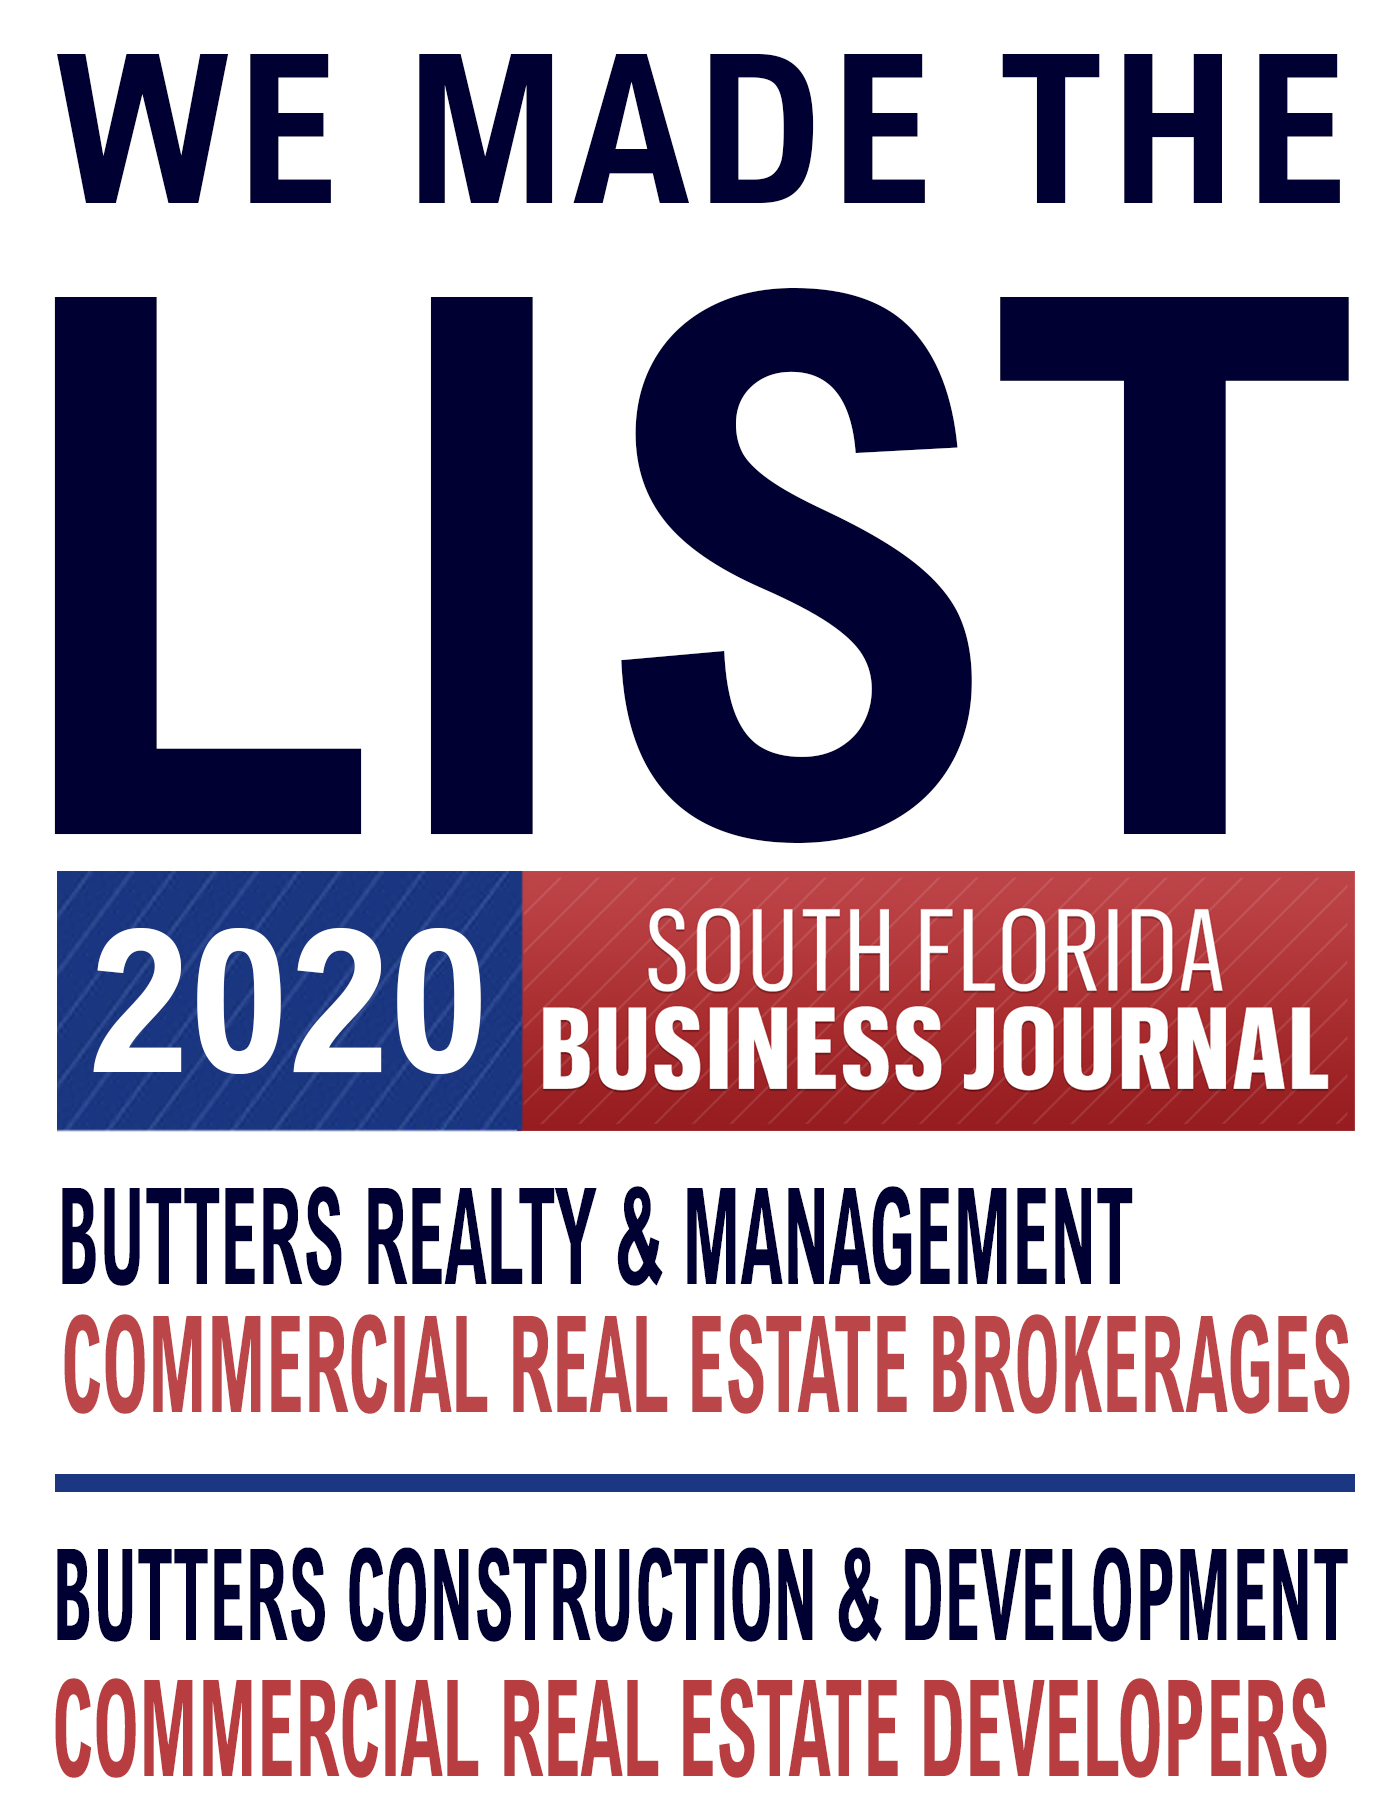 Butters Made the South Florida Business Journal List Once Again!